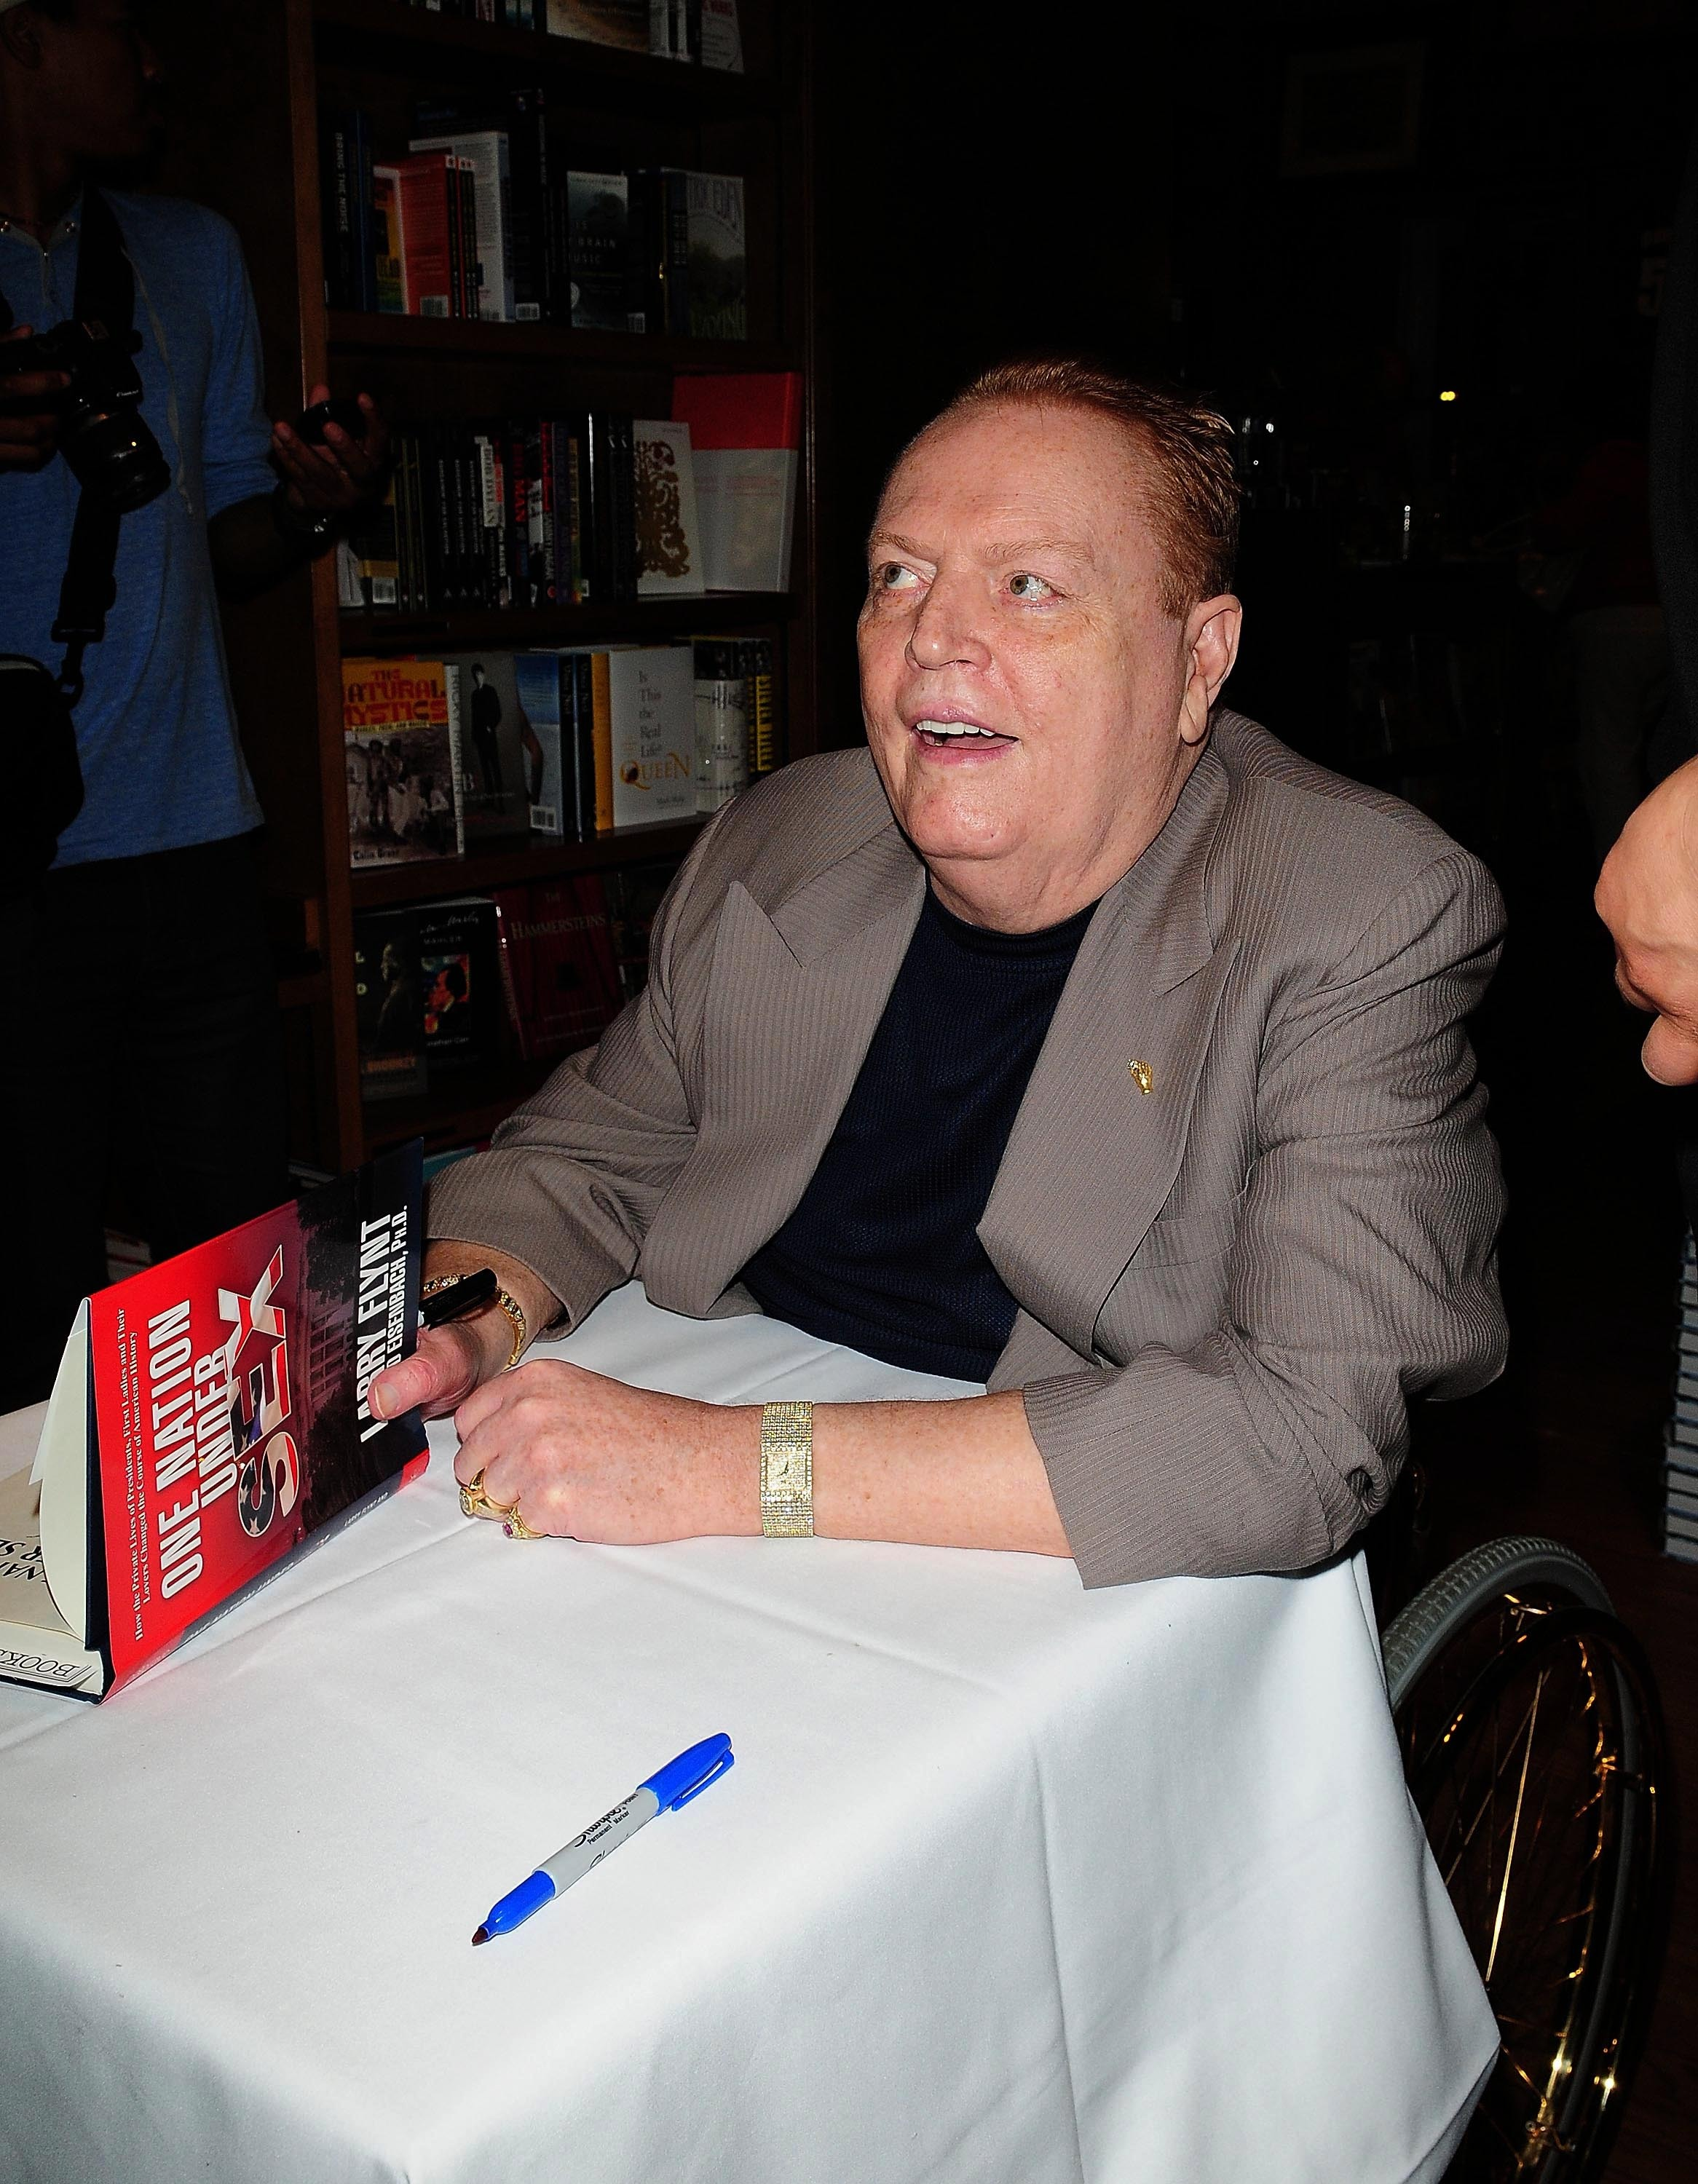 Larry Flynt signs copies of his book 'One Nation Under Sex: How the Private Lives of Presidents, First Ladies and Their Lovers Changed the Course of American History' at Books and Books Coral Gables, Florida - 03.06.11  Featuring: Larry Flynt Where: Coral Gables, Florida, United States When: 03 Jun 2011 Credit: Johnny Louis/WENN.com